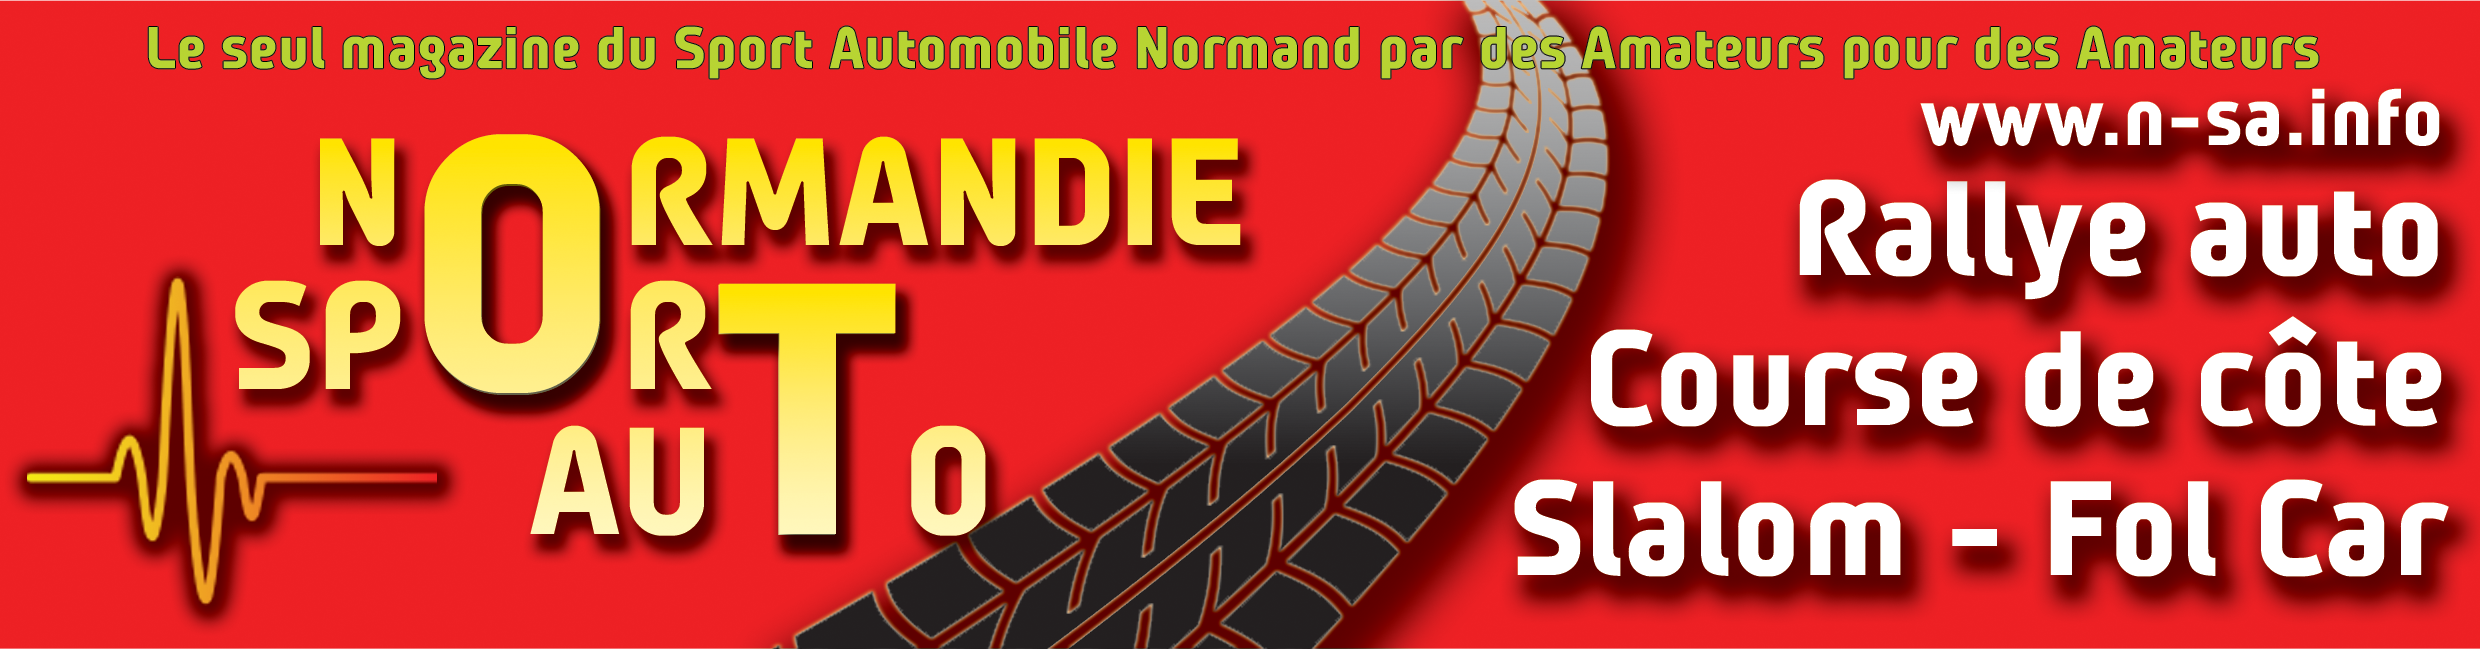 Normandie-Sport-Automobile